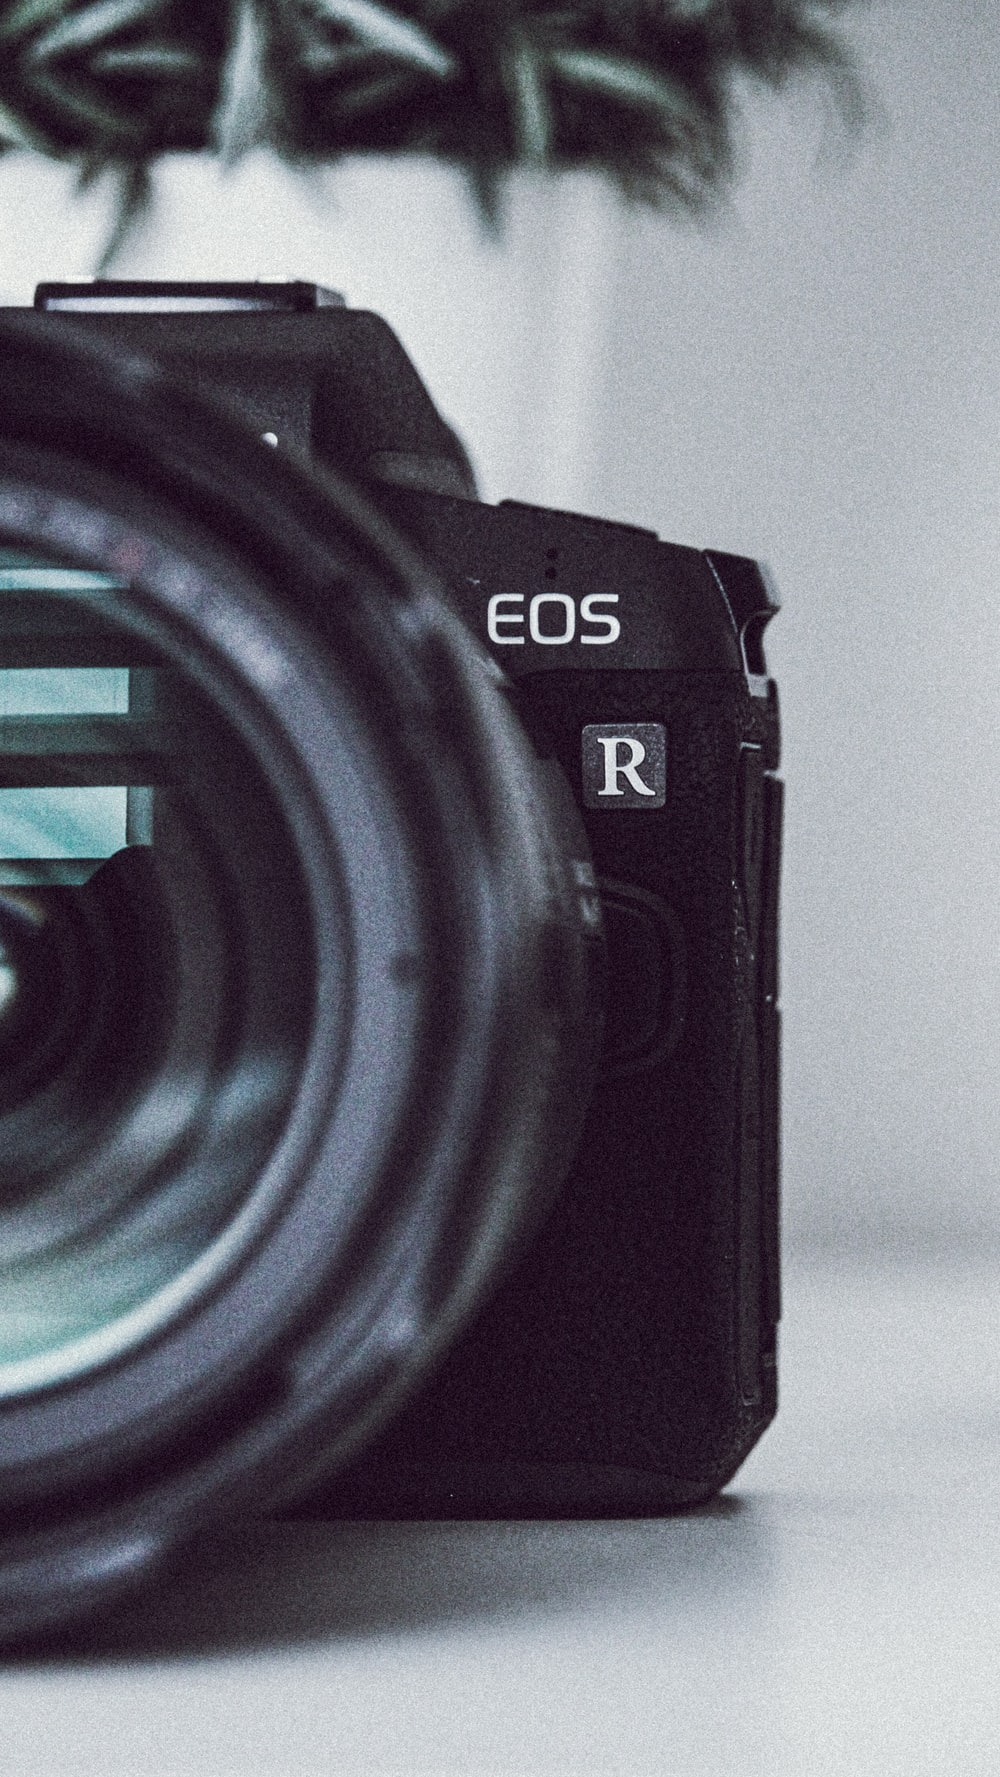 black Canon EOS R DSLR camera